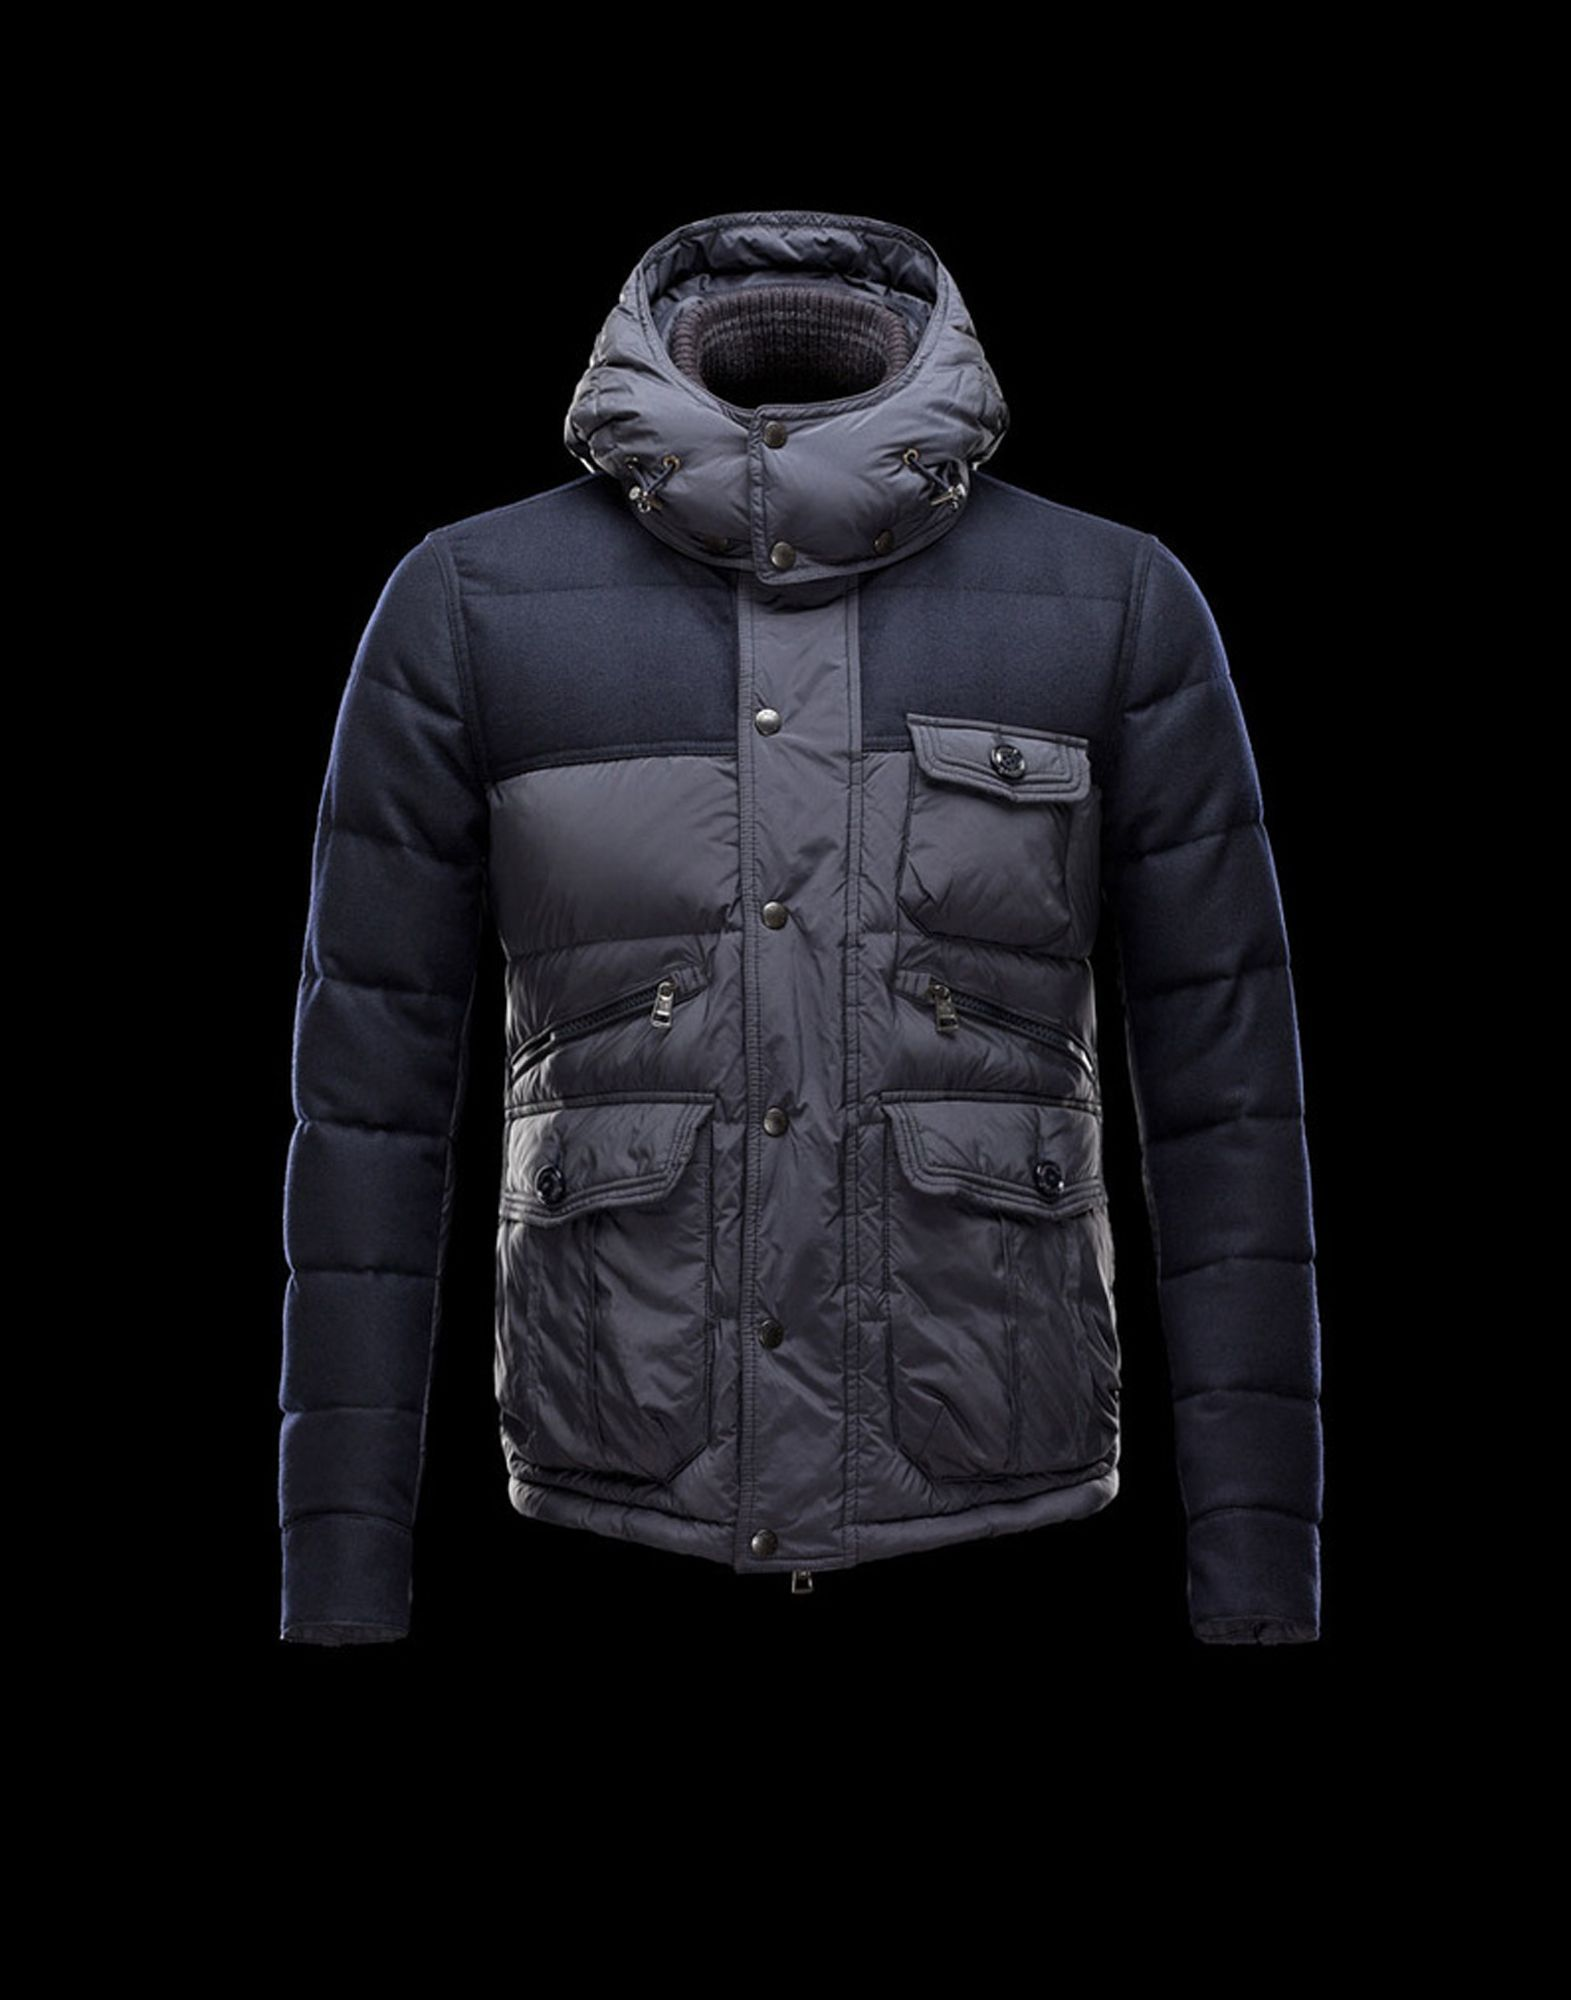 MONCLER HASTIERE in 2020 Moncler jacket women, Moncler